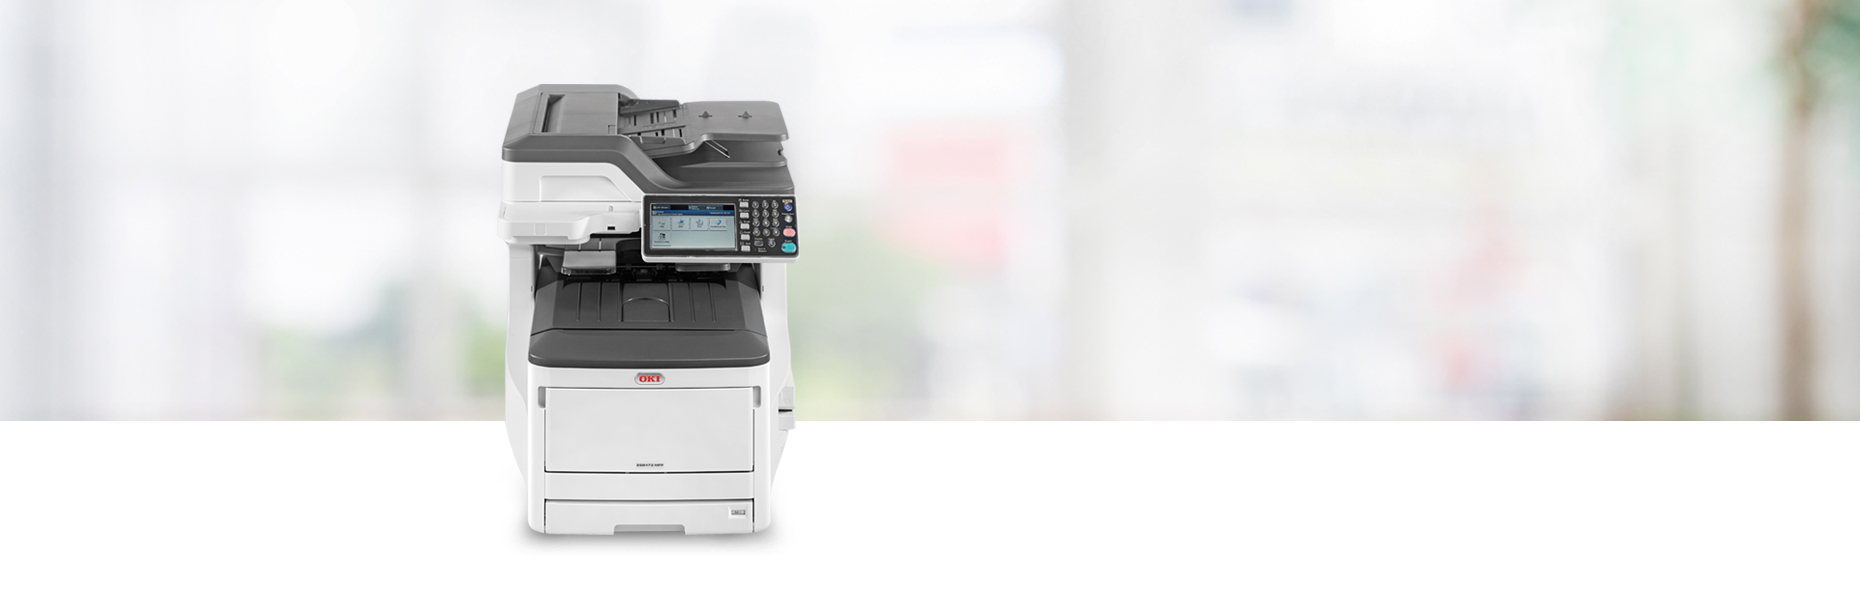 OKI ES8473 A3 Colour Multifunction Printer}